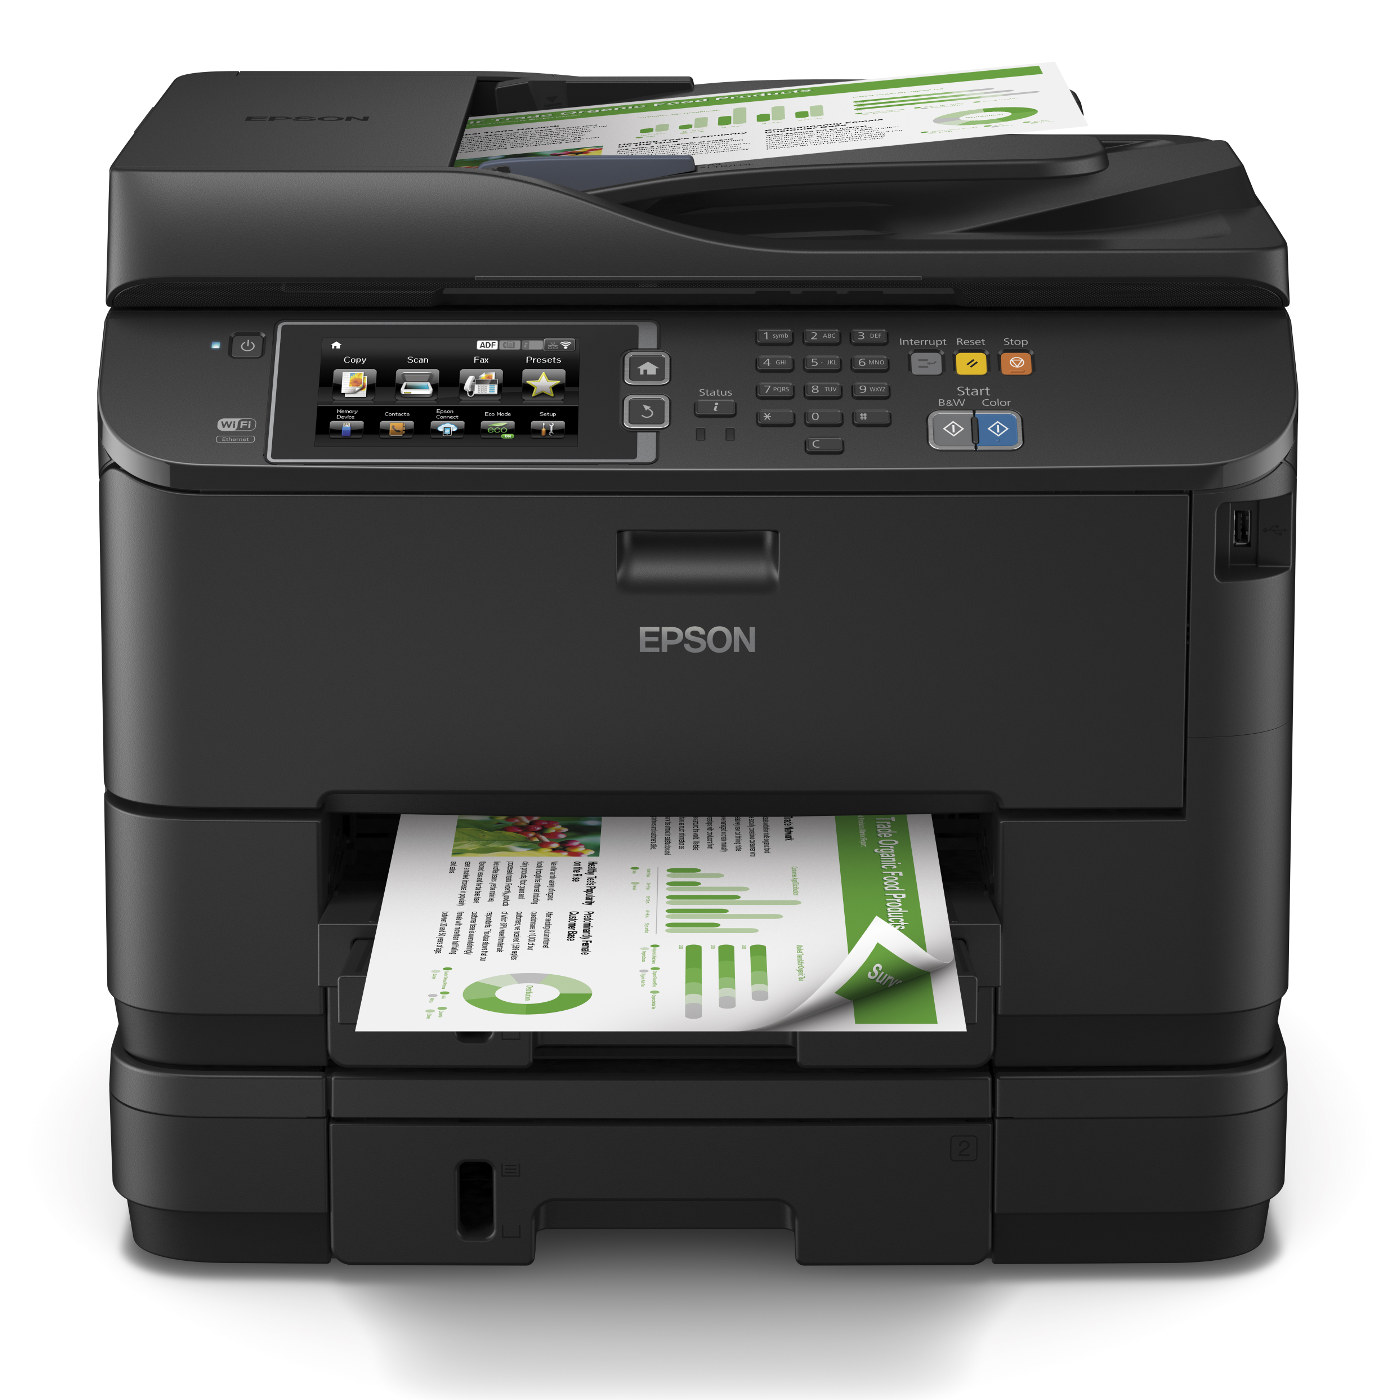 epson workforce wf 4640dtwf imprimante multifonction. Black Bedroom Furniture Sets. Home Design Ideas